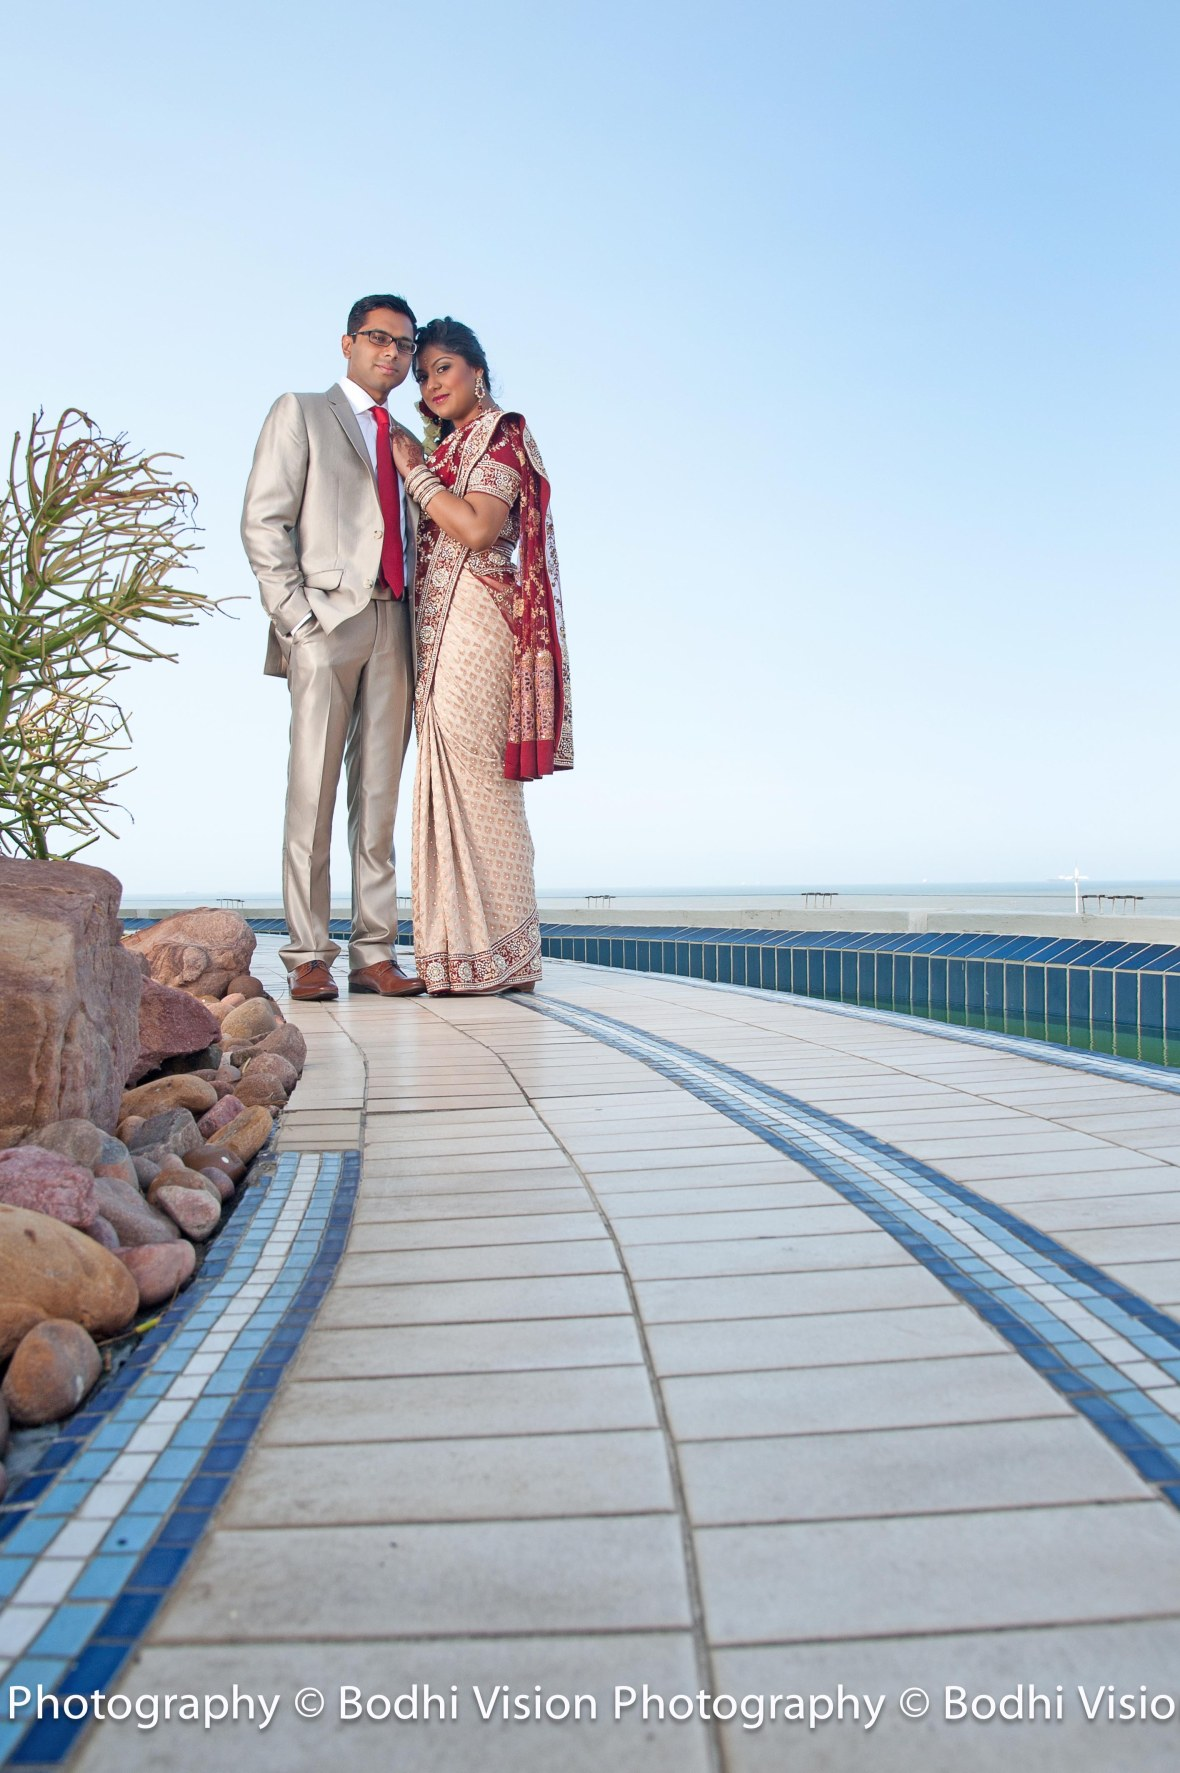 Bodhi Vision Photography, Best Durban Indian Wedding Photographer, Indian Wedding Photography KZN, Elangeni Grand Ilanga Indian Wedding, Riccardo & Valedeen, Tamil Wedding Durban